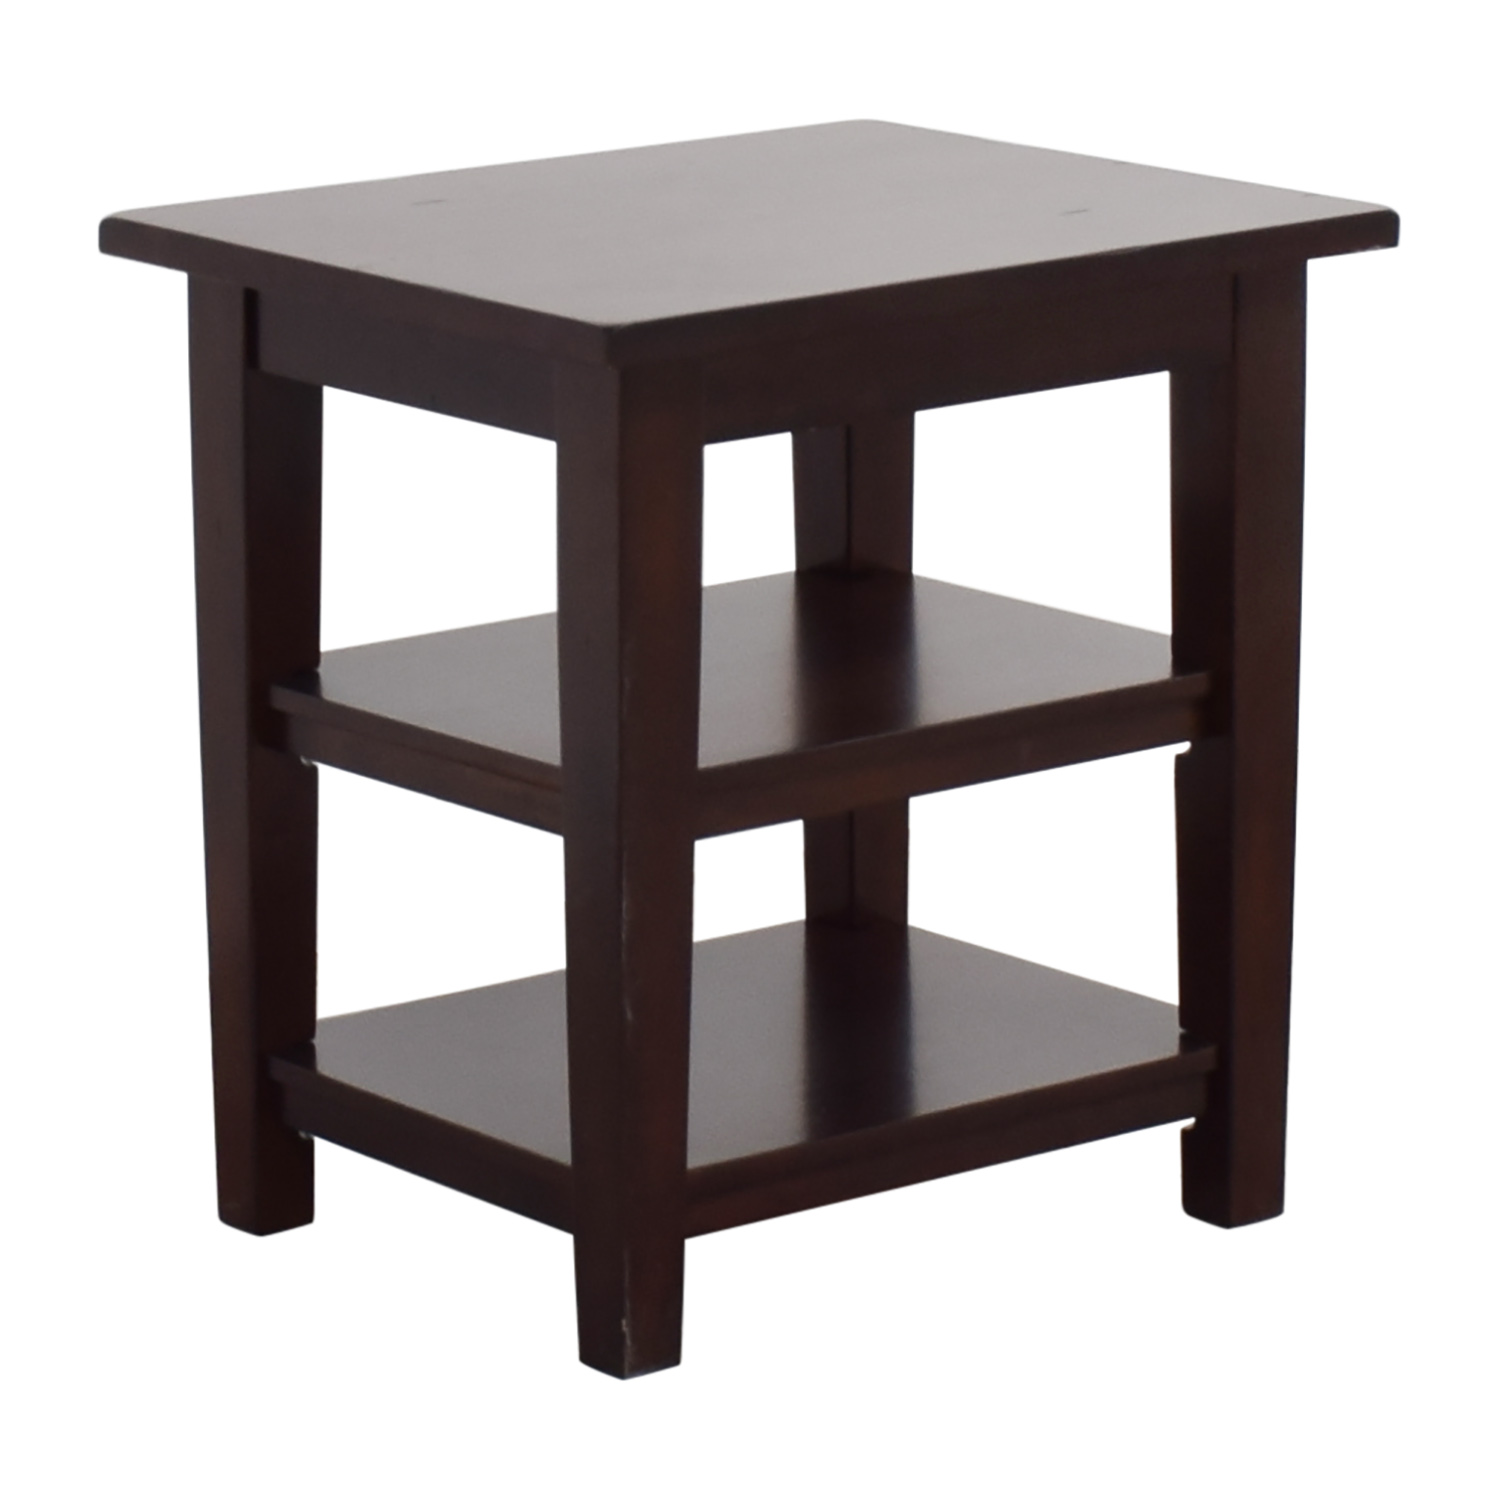 Pier 1 Wooden End Table / Tables